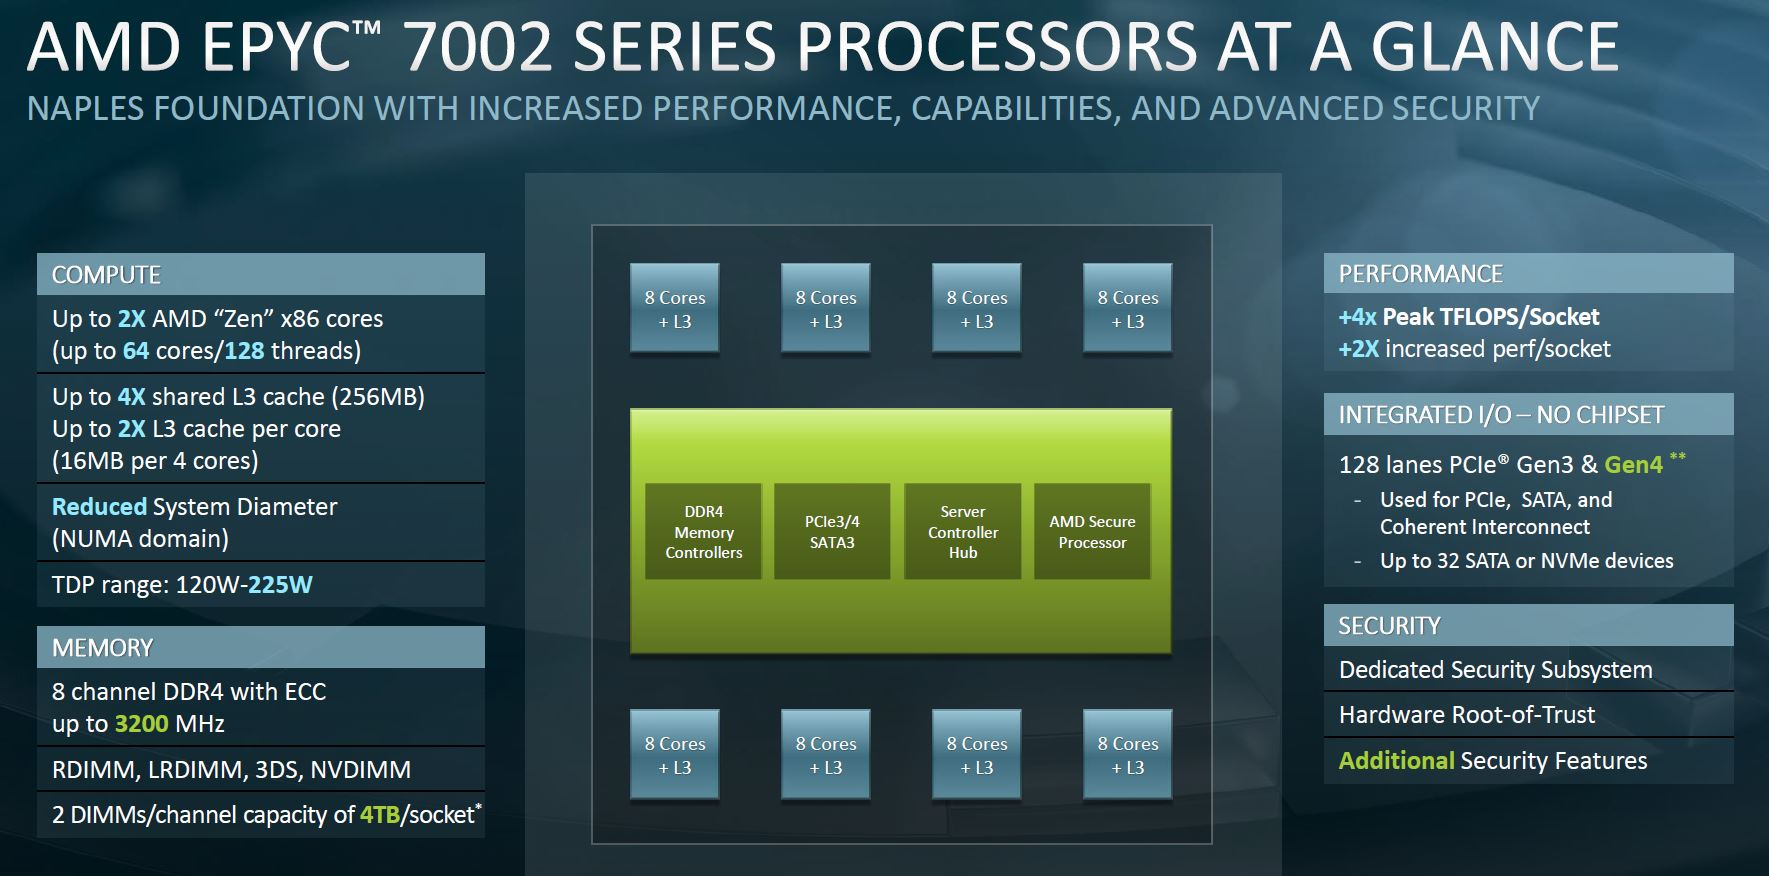 AMD EPYC 7002 Overview